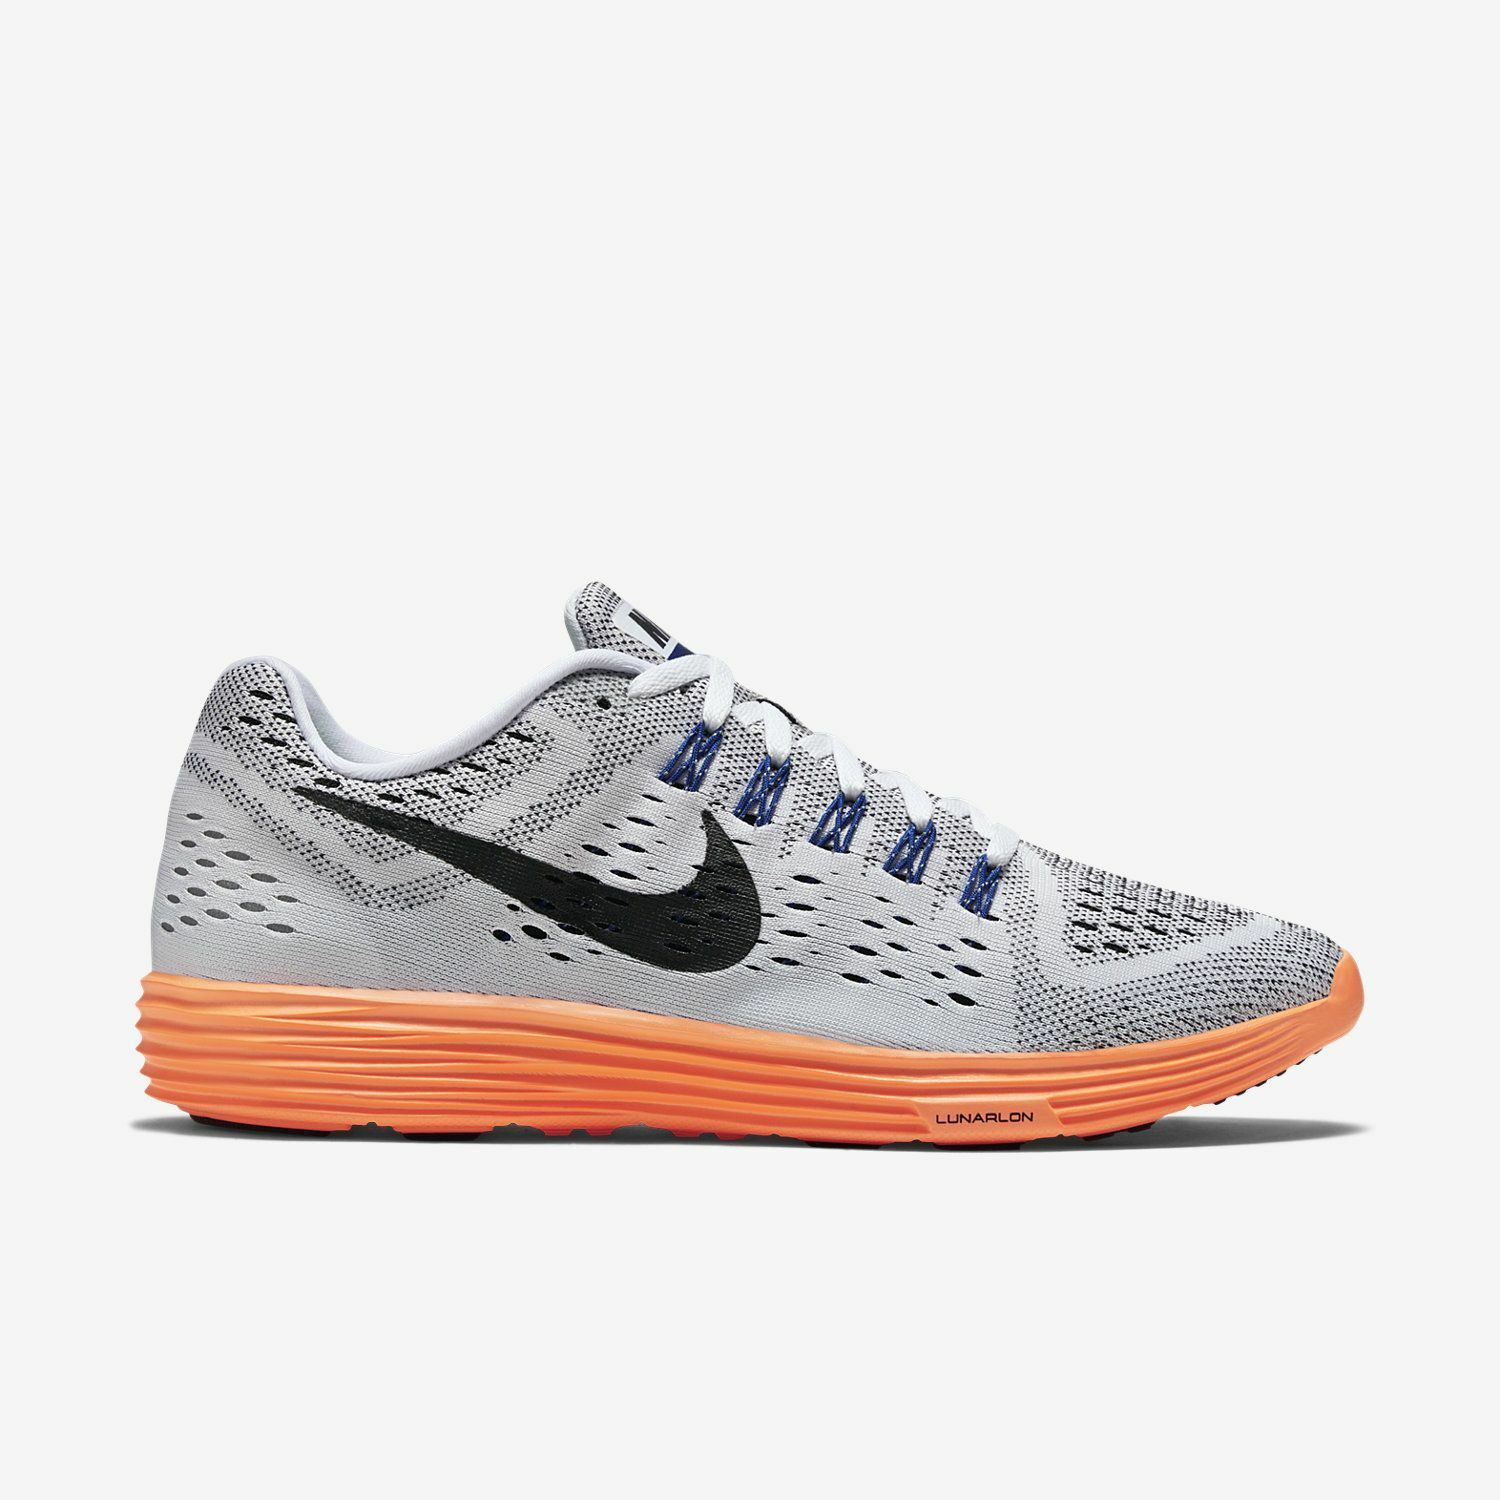 12a04f5bd9a Nike Men s Lunar Tempo Running Shoes Shoes Shoes Size 10 NEW 705461 100  White Total